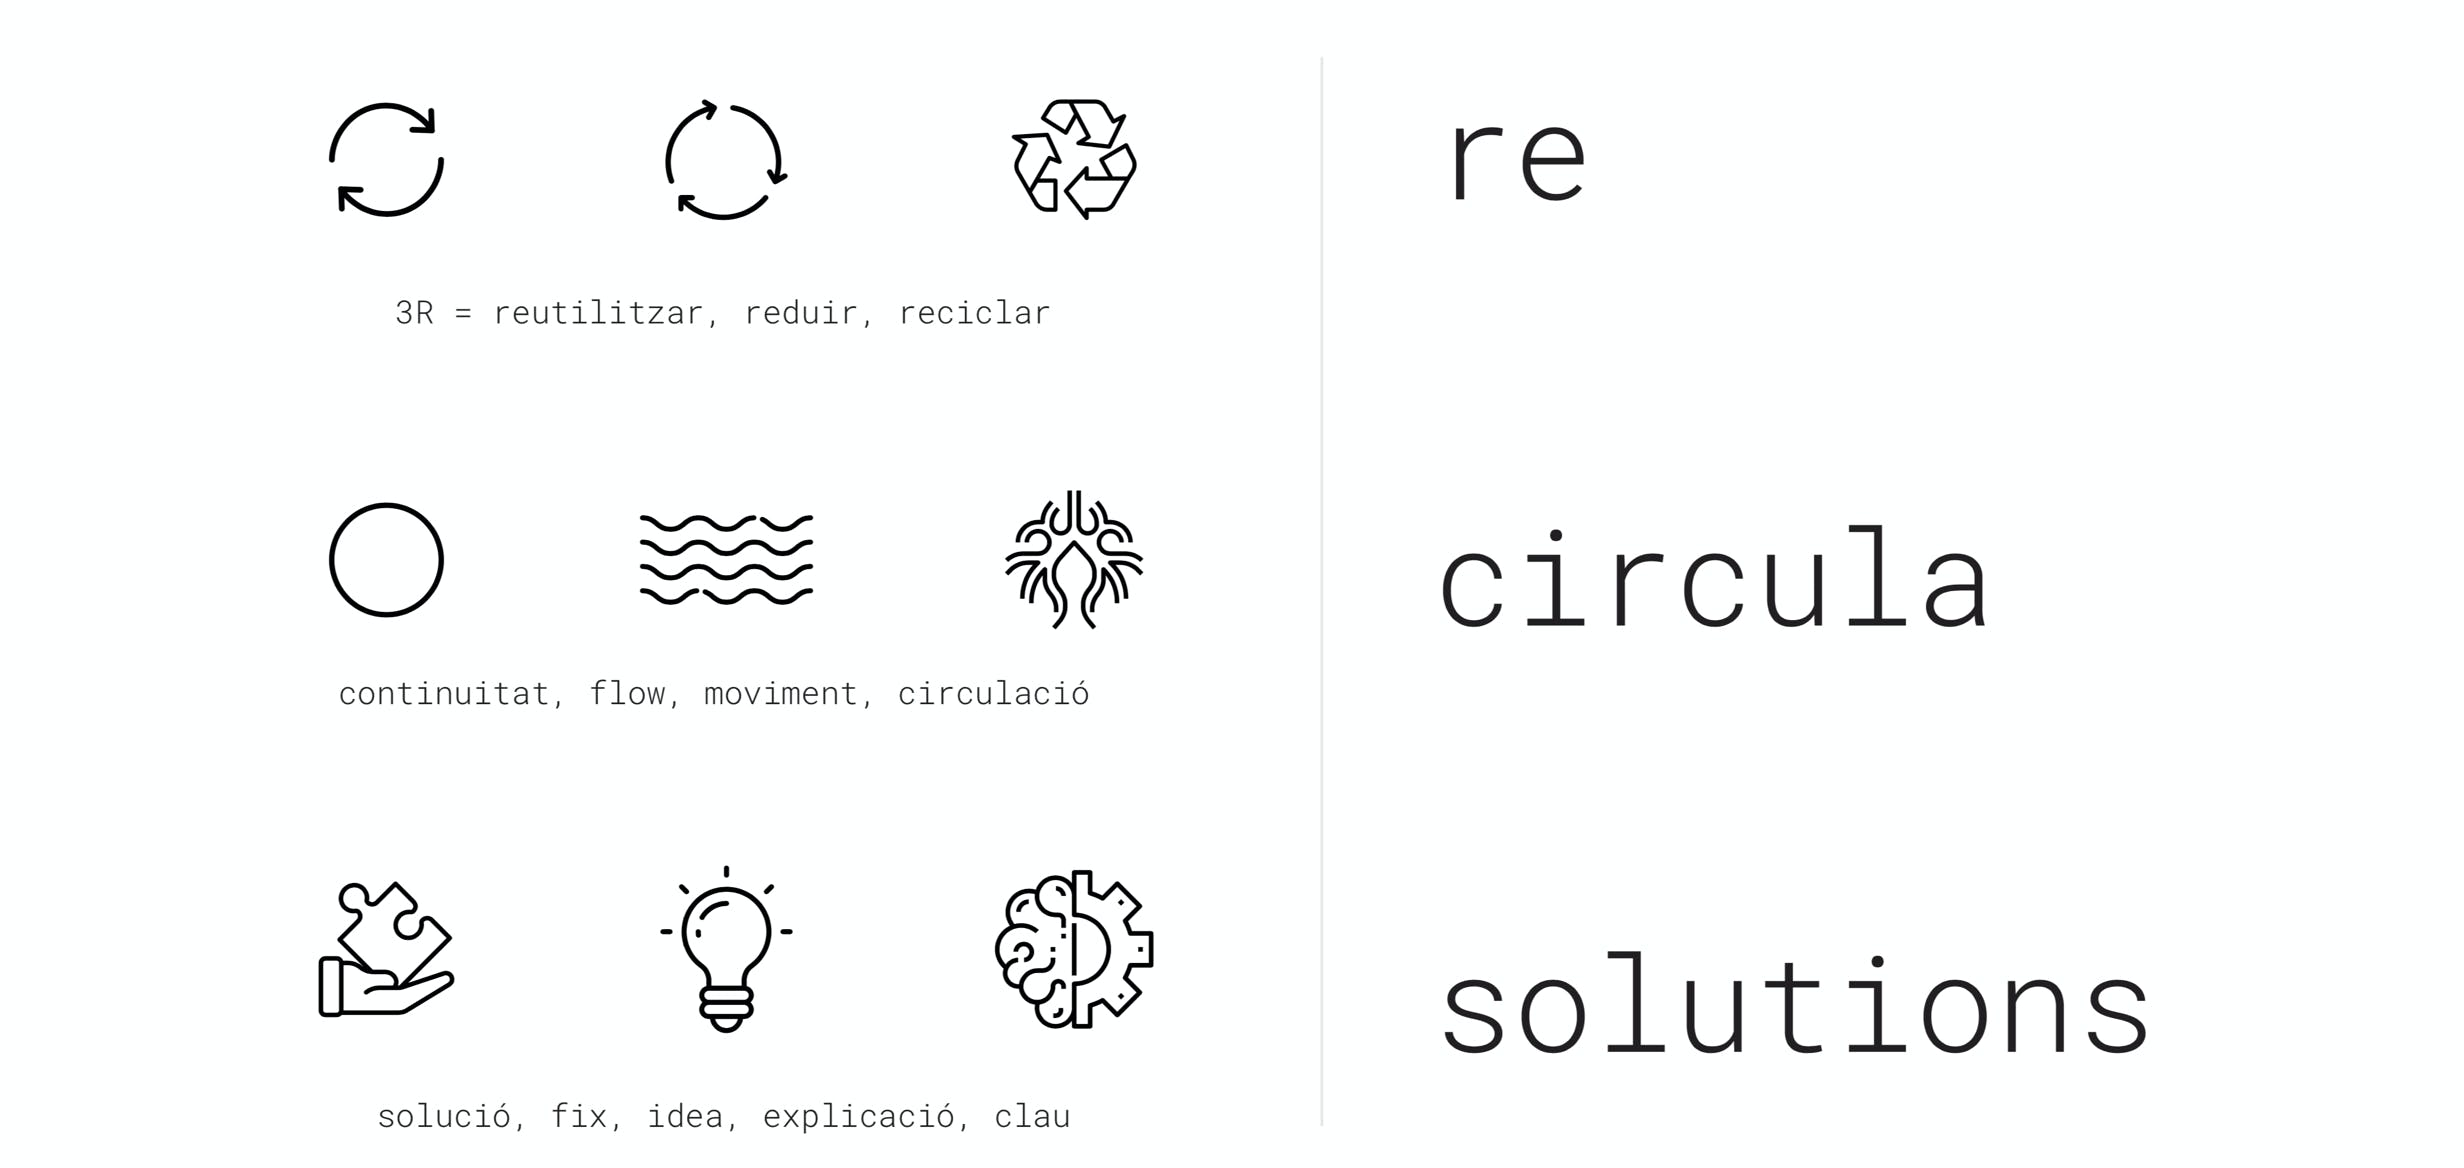 Recircula Solutions Concept for the Brand by Metakitrina